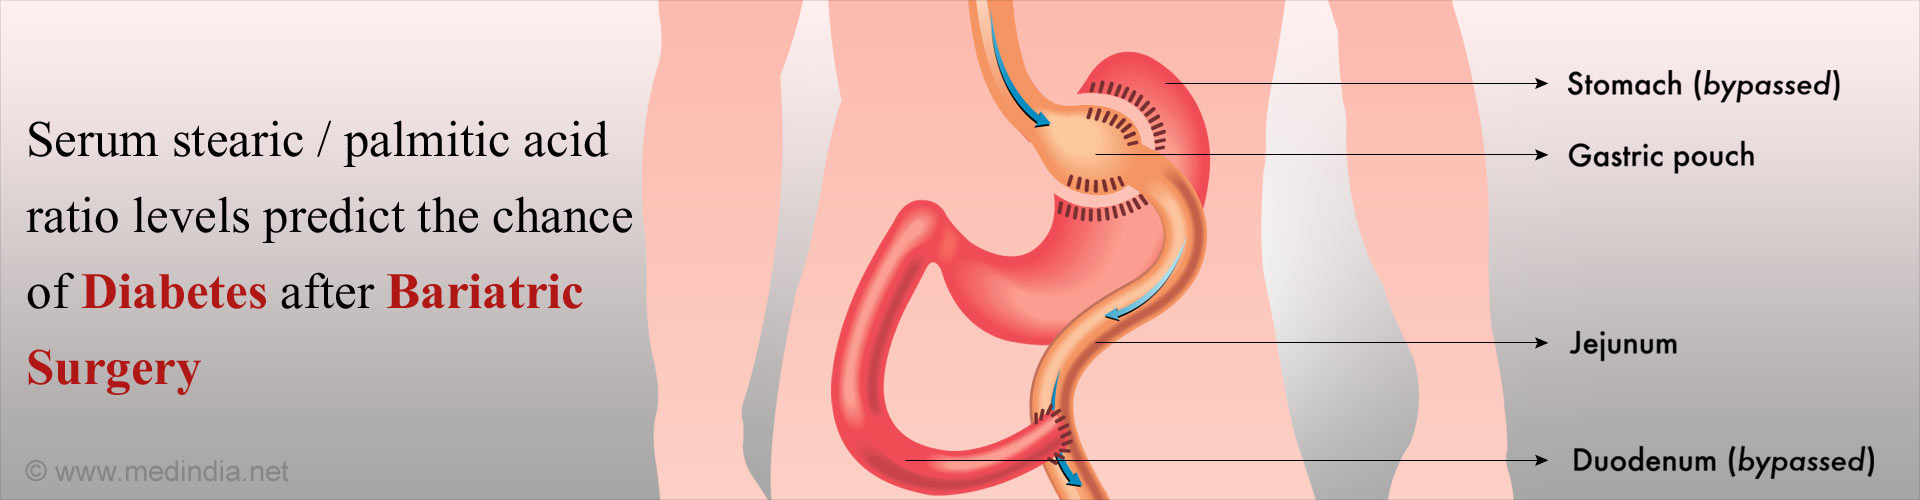 Fatty Acids Ratio Can Predict Remission of Diabetes After Bariatric Surgery